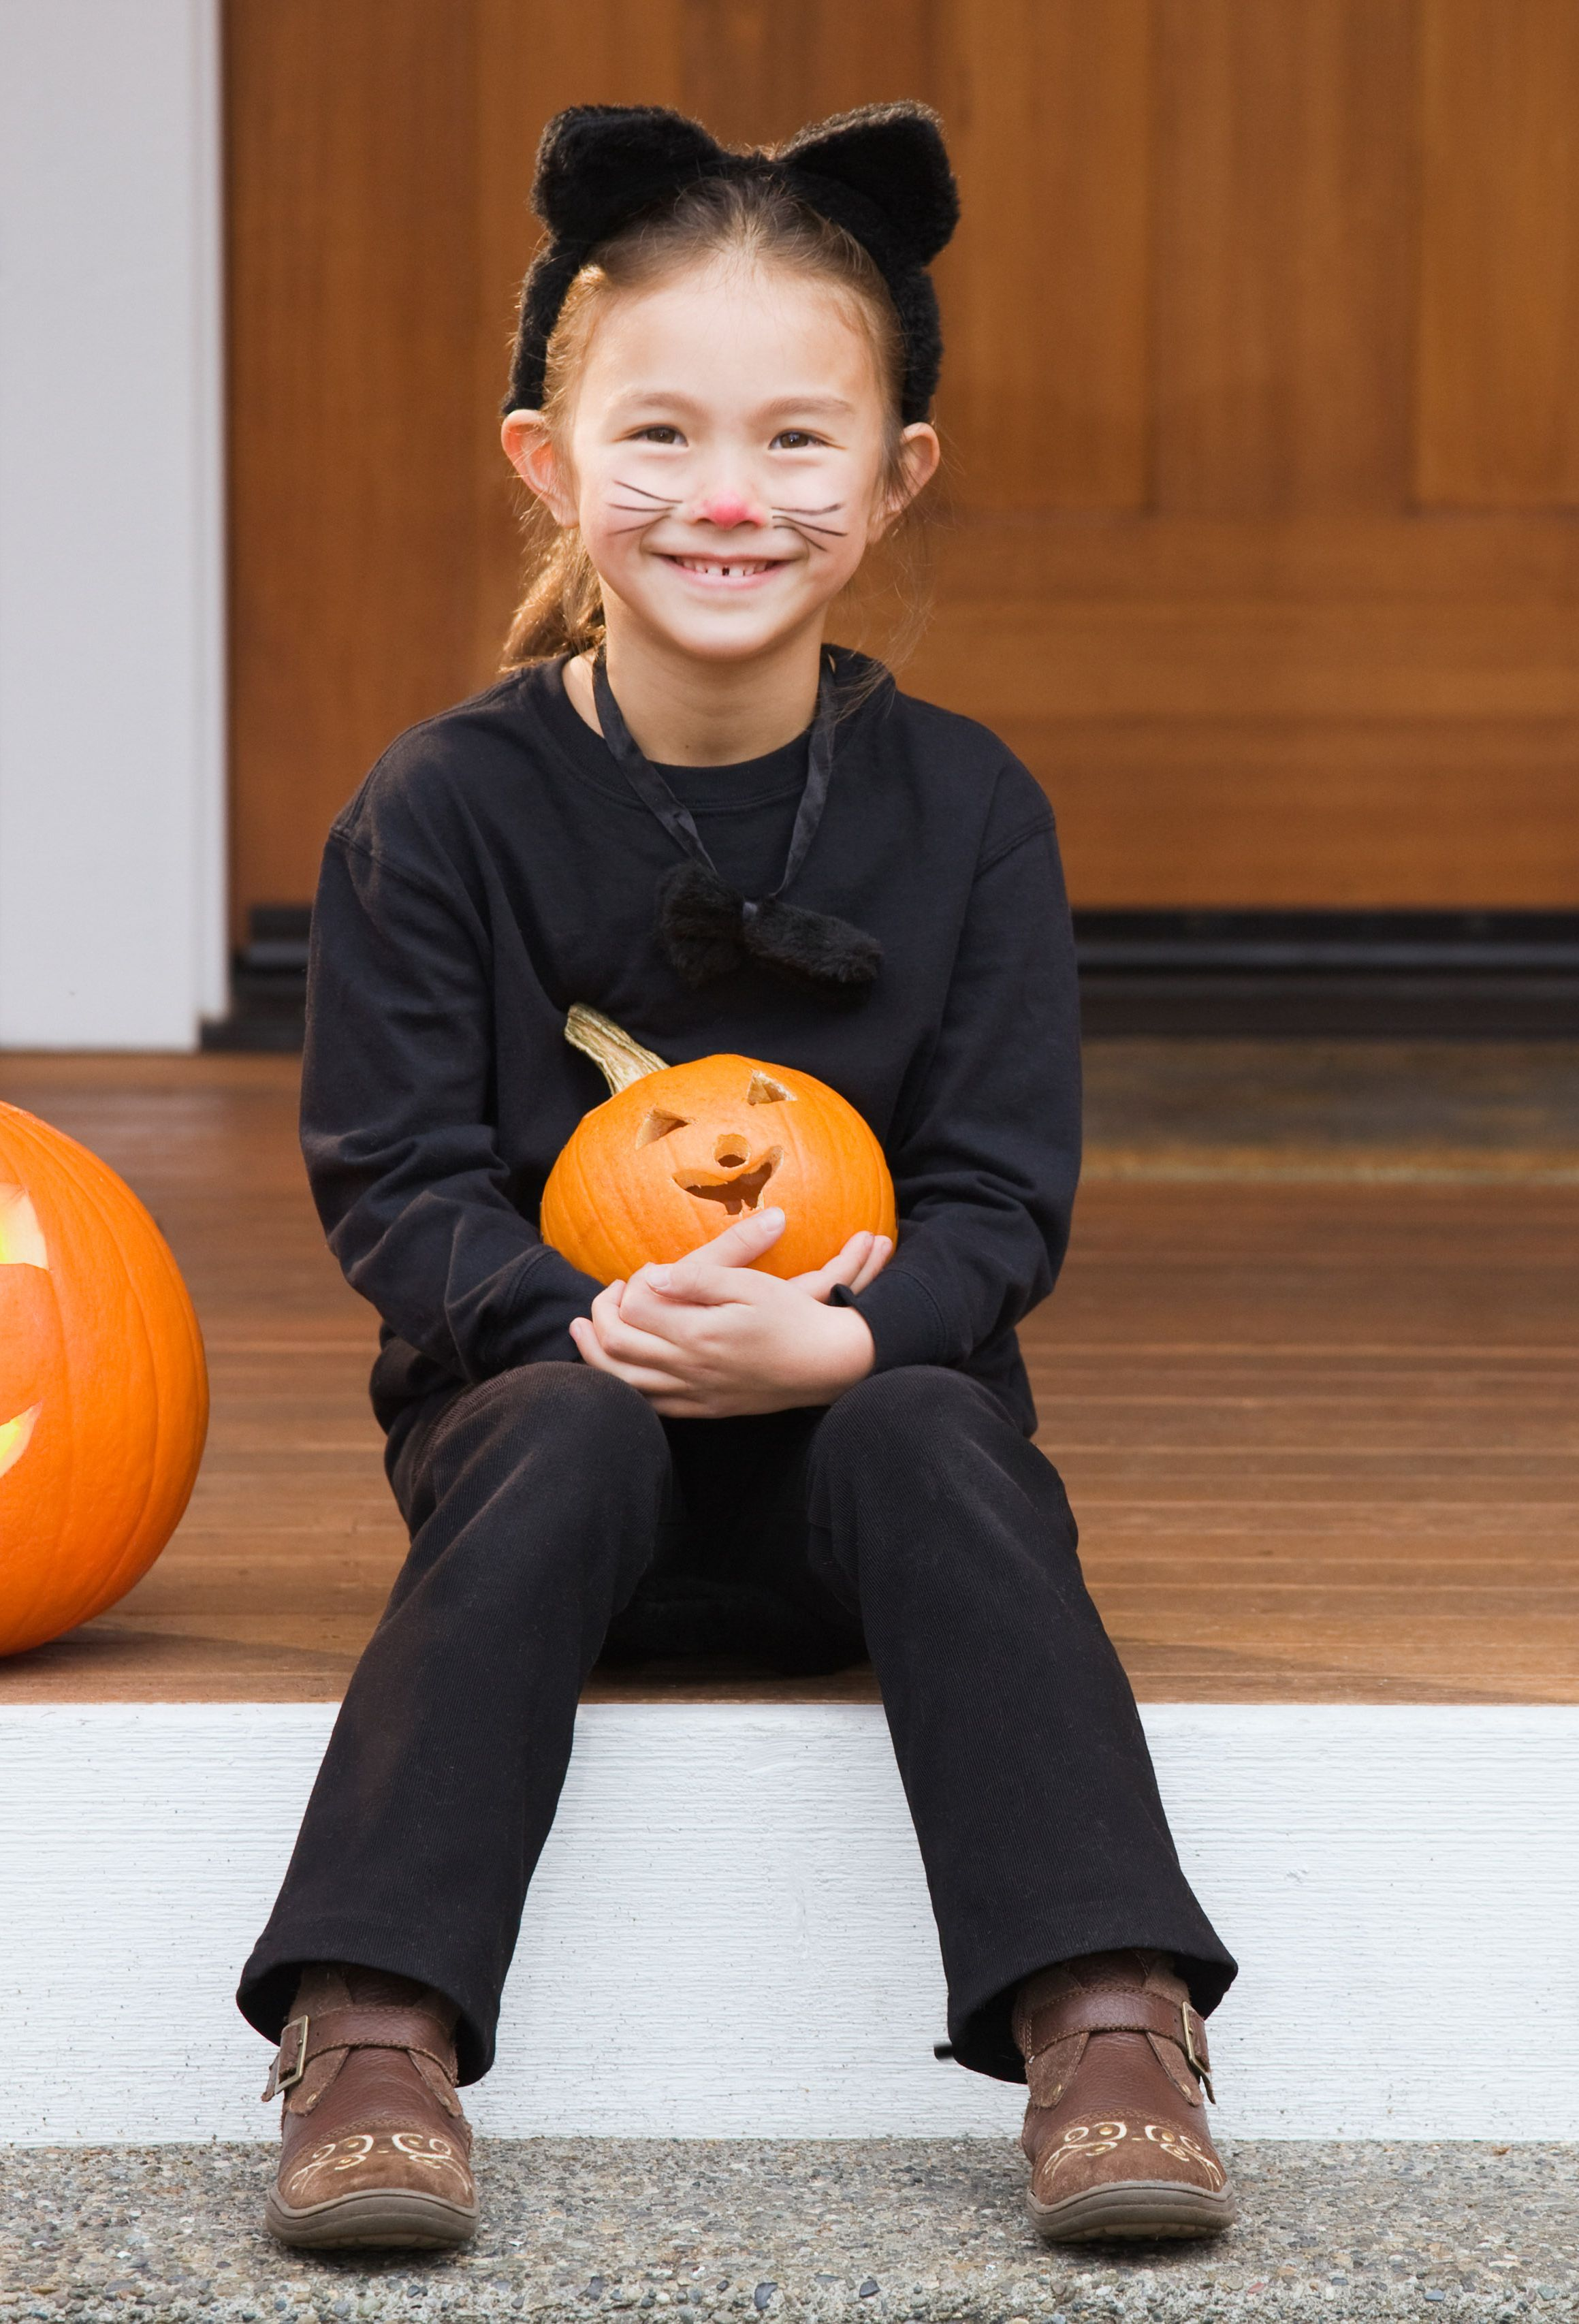 Cat Costumes For Kids How To Make Diy Halloween Cat Costumes For